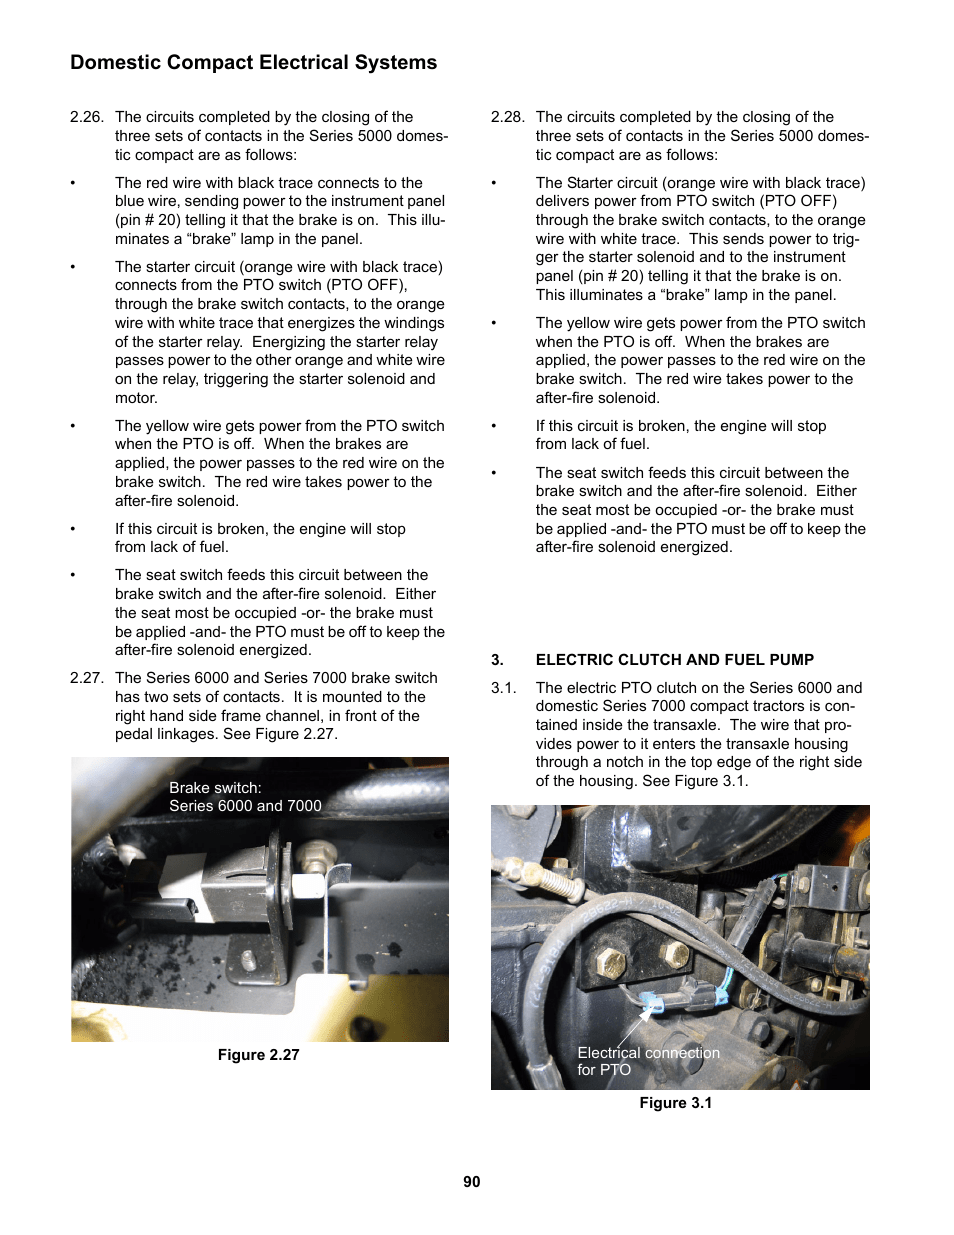 hight resolution of electric clutch and fuel pump domestic compact electrical systems cub cadet 5000 series user manual page 94 96